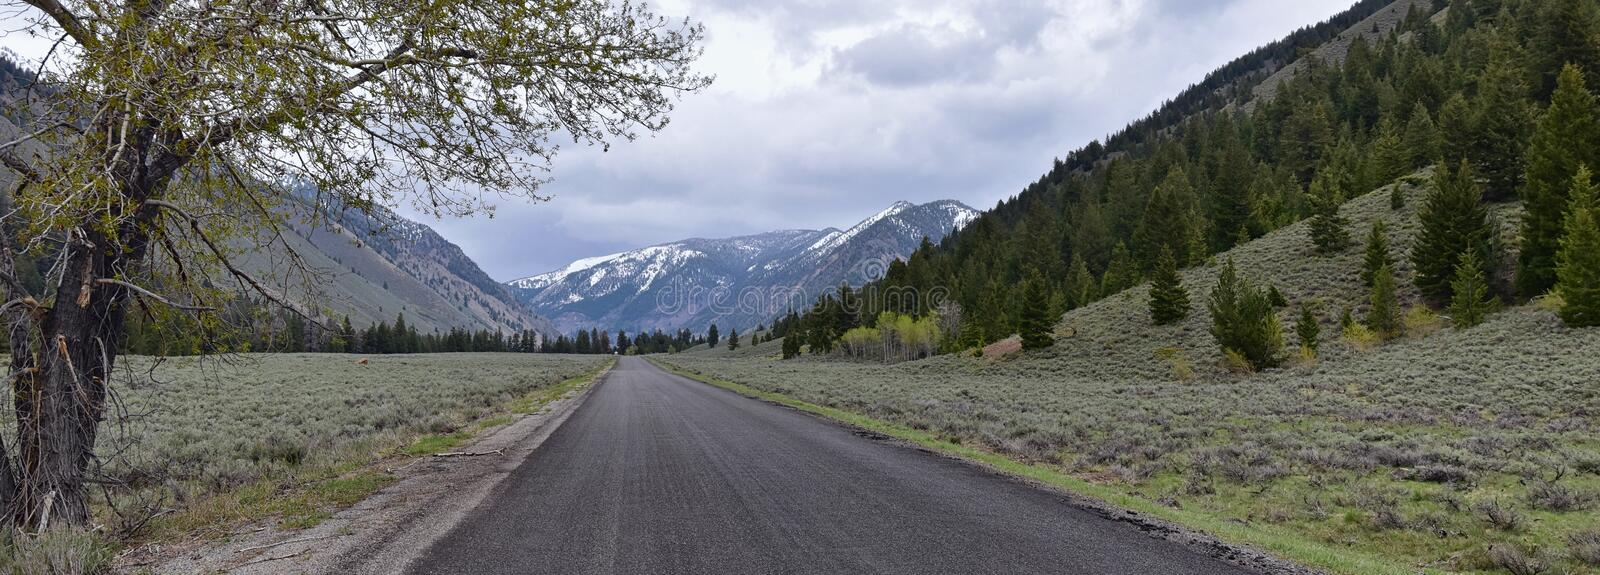 Sun Valley, Badger Canyon in Sawtooth Mountains National Forest Landscape panorama views from Trail Creek Road in Idaho. United States royalty free stock image